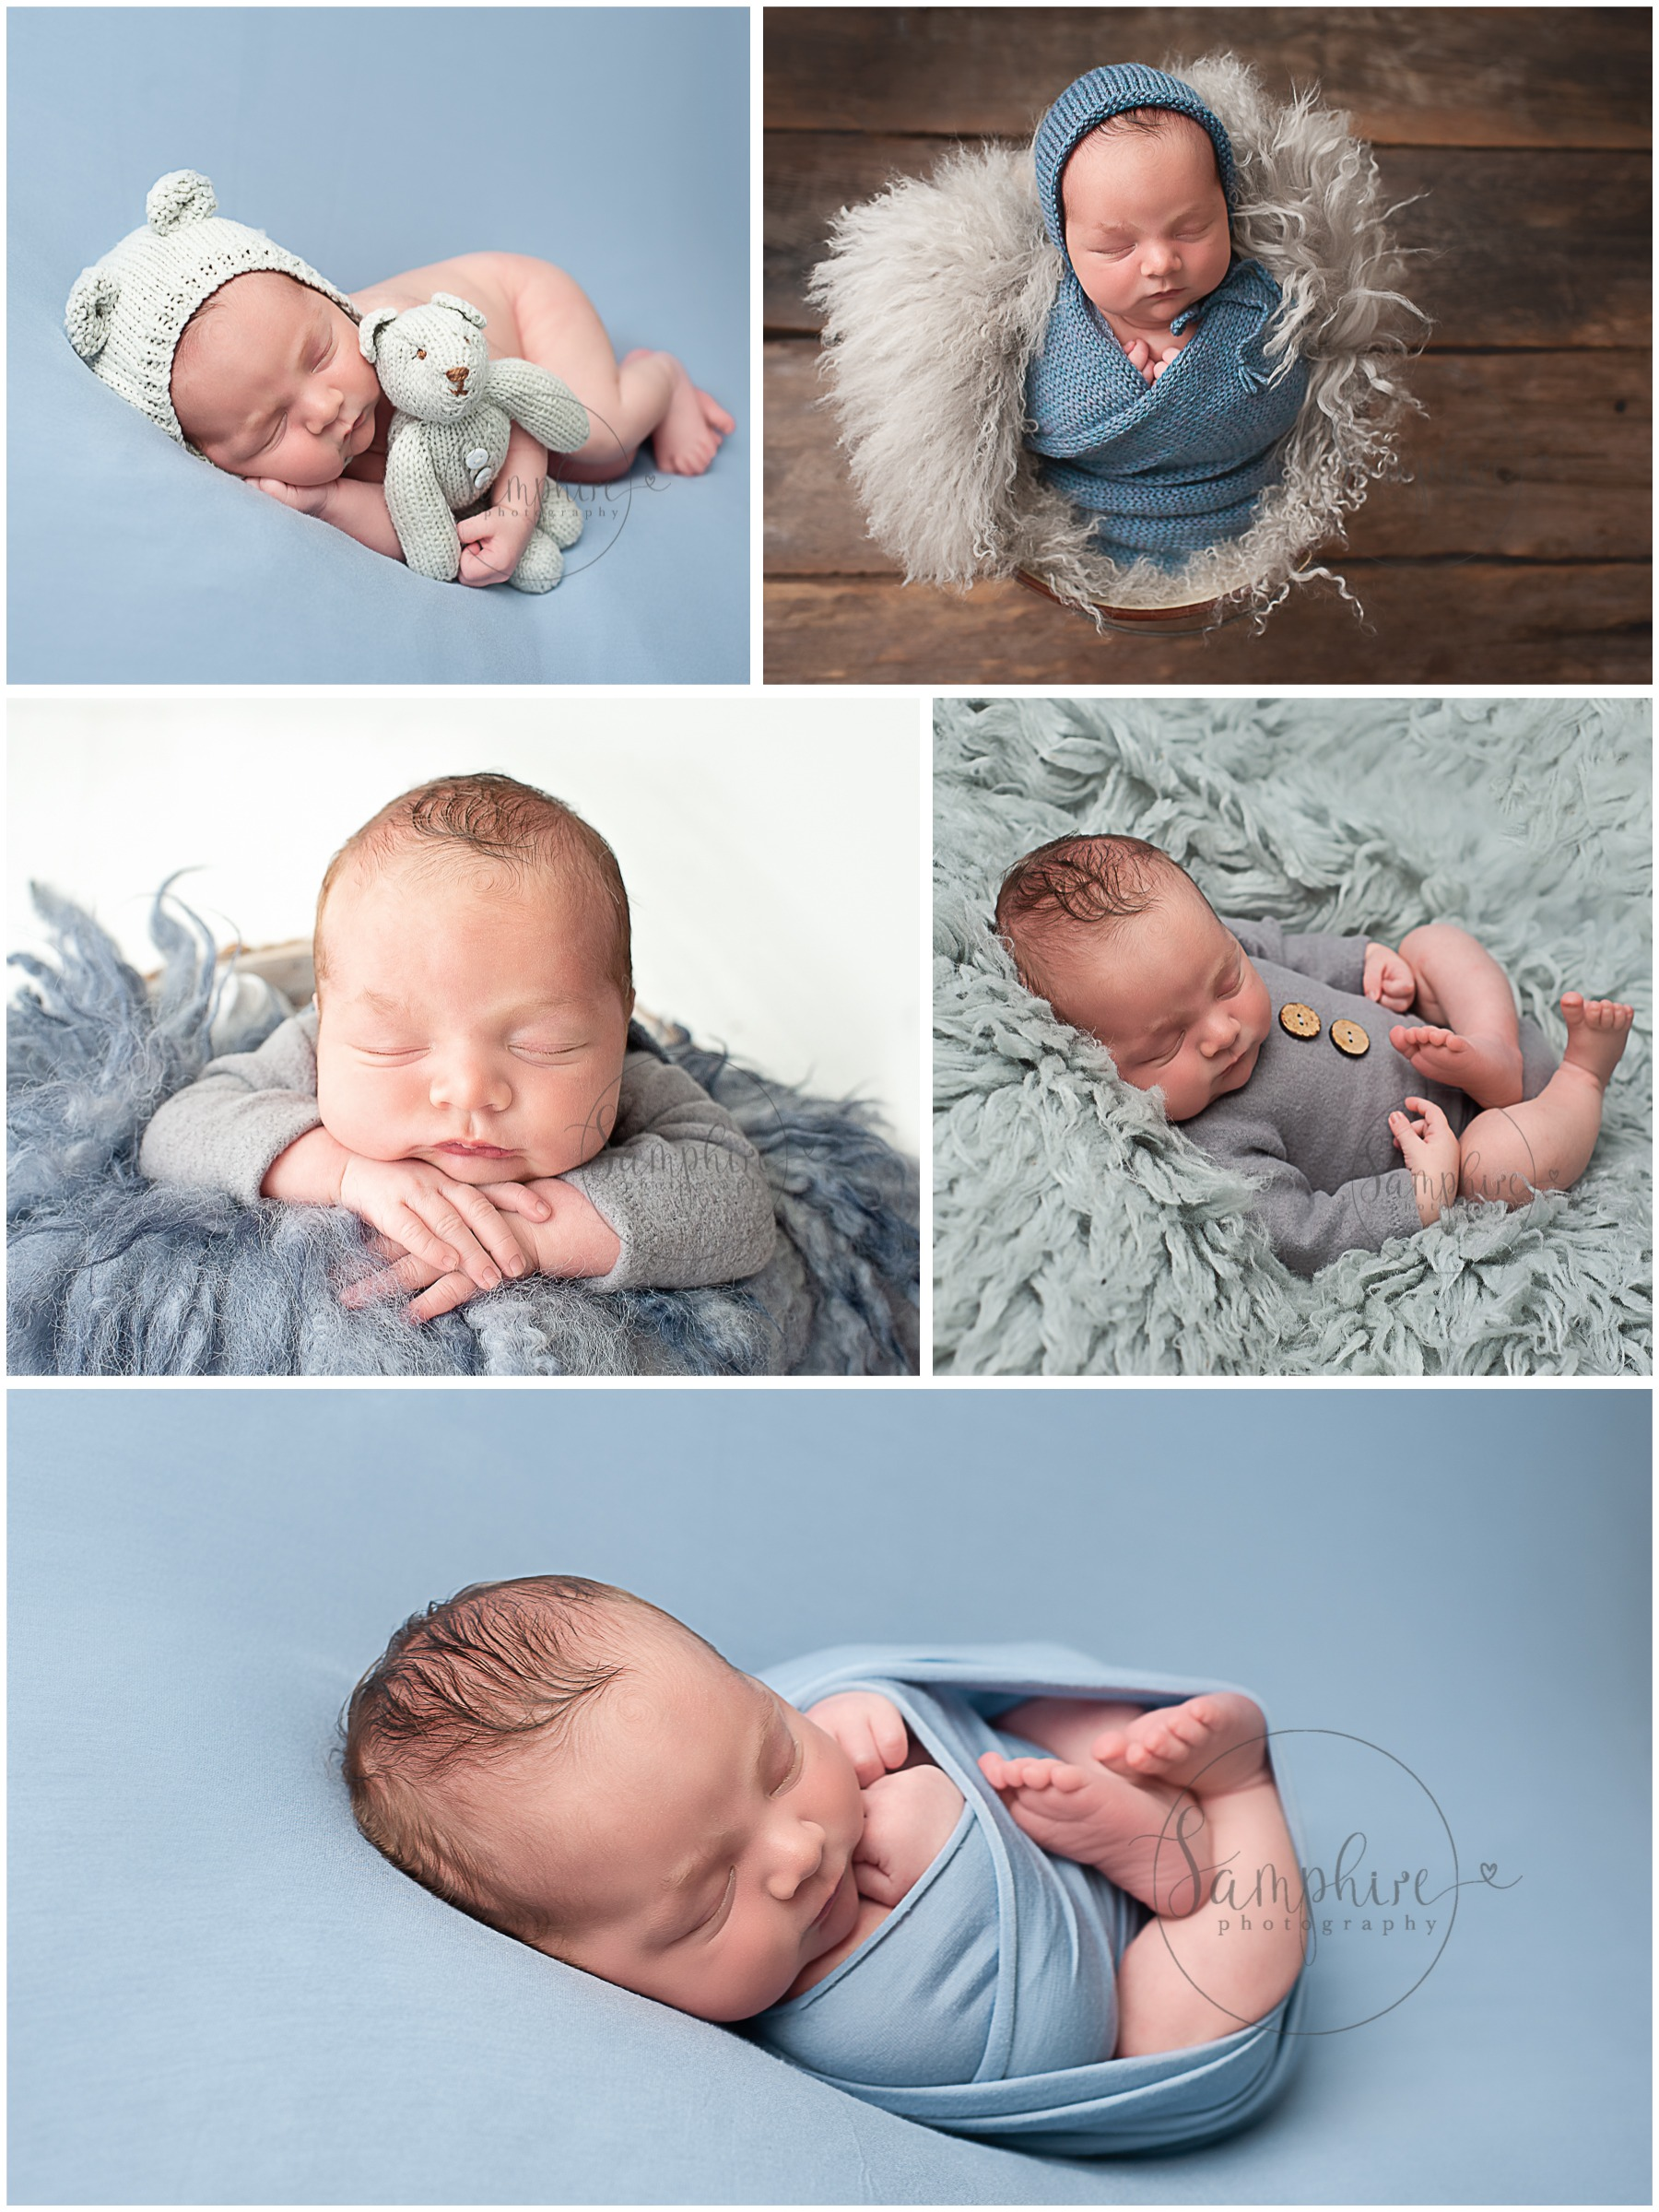 Newborn Photographs with older Sibling blue grey knits layers flokati by Samphire Photography